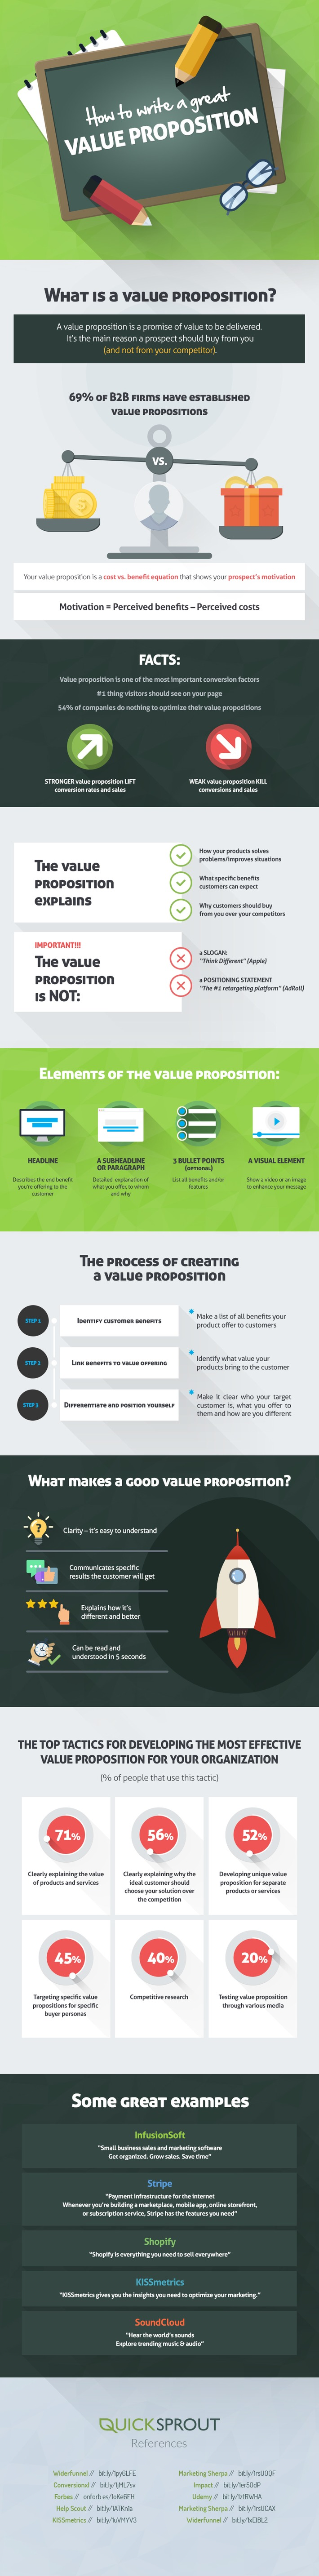 Ecommerce Eye Candy - How to Write a Great Value Proposition [Infographic] - cleverbridge | The Marketing Technology Alert | Scoop.it